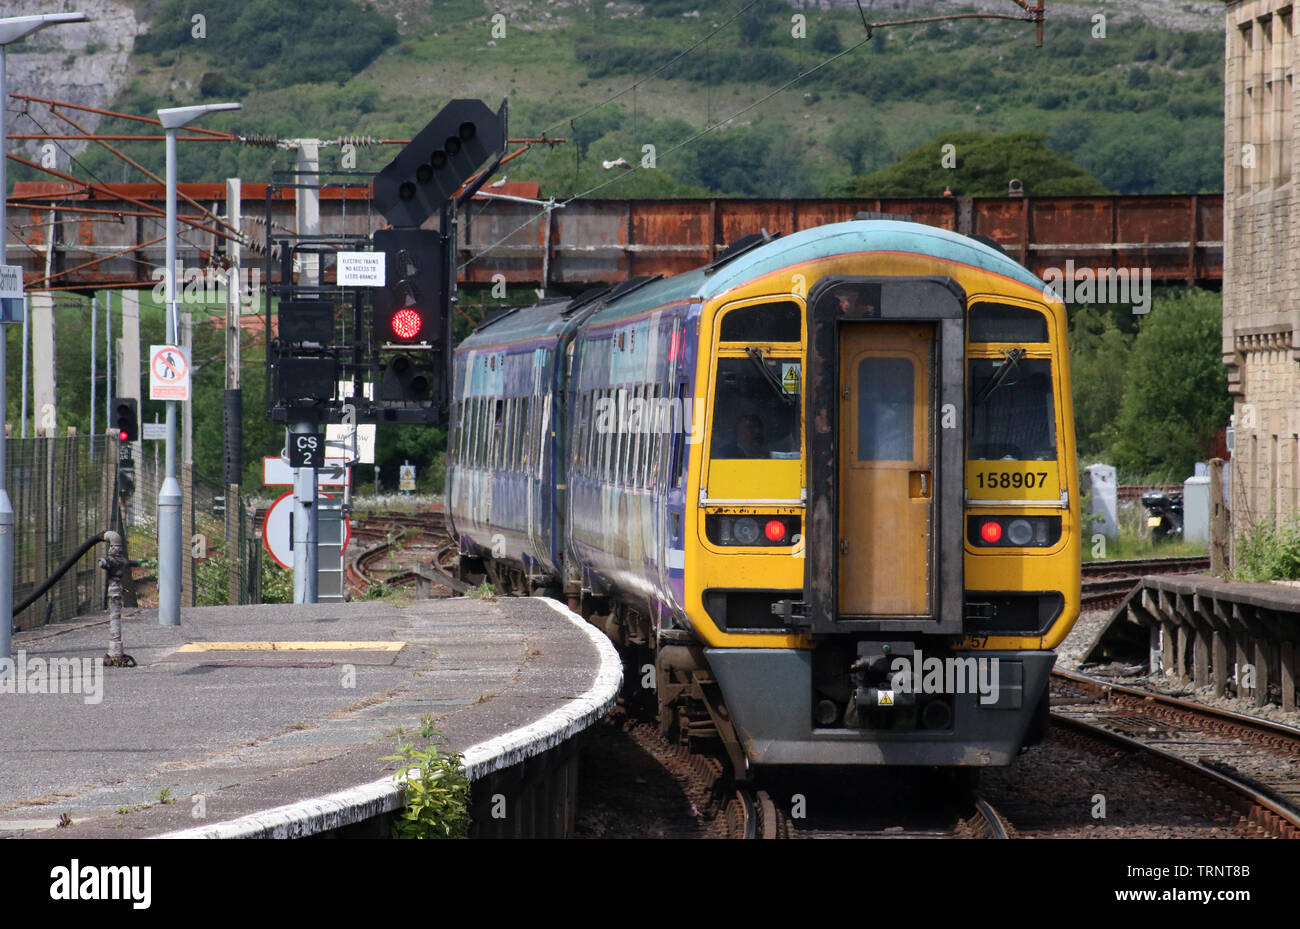 Two car class 158 express sprinter dmu in Northern livery leaving platform 2 at Carnforth railway station with passenger train Monday 10th June 2019. - Stock Image